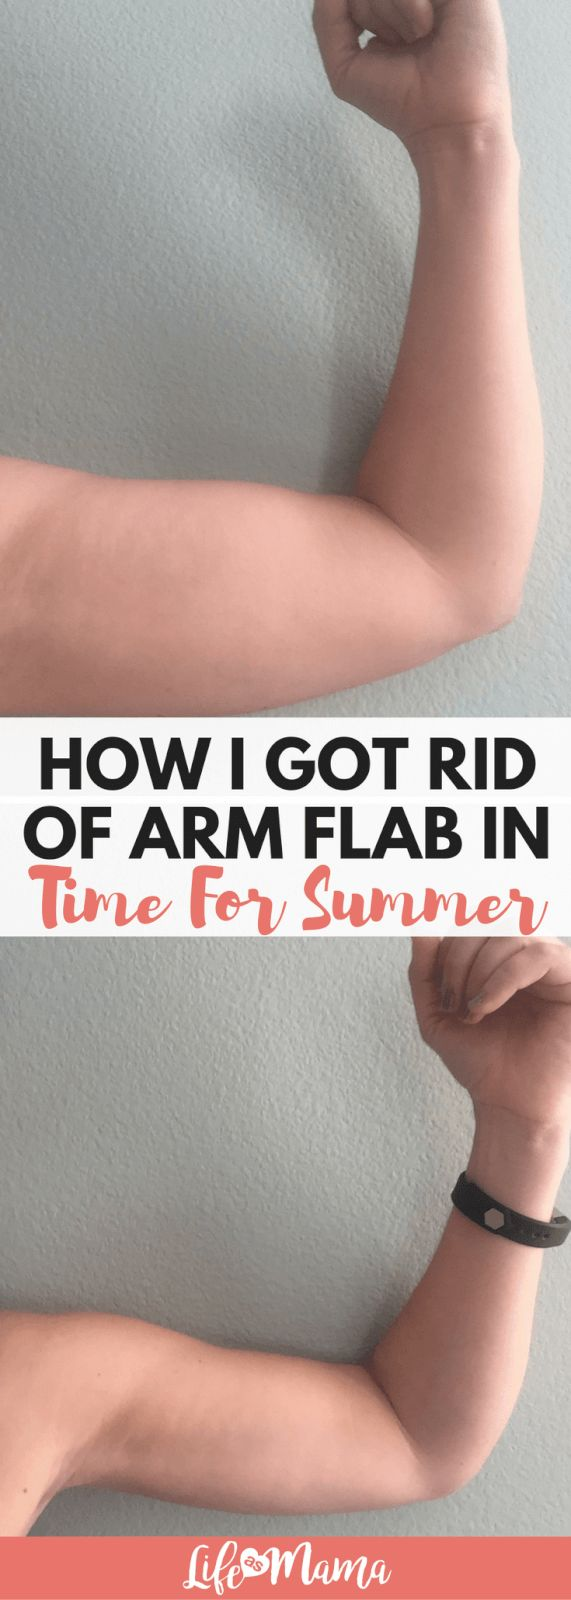 How I Got Rid Of Arm Flab In Time For Summer I got…